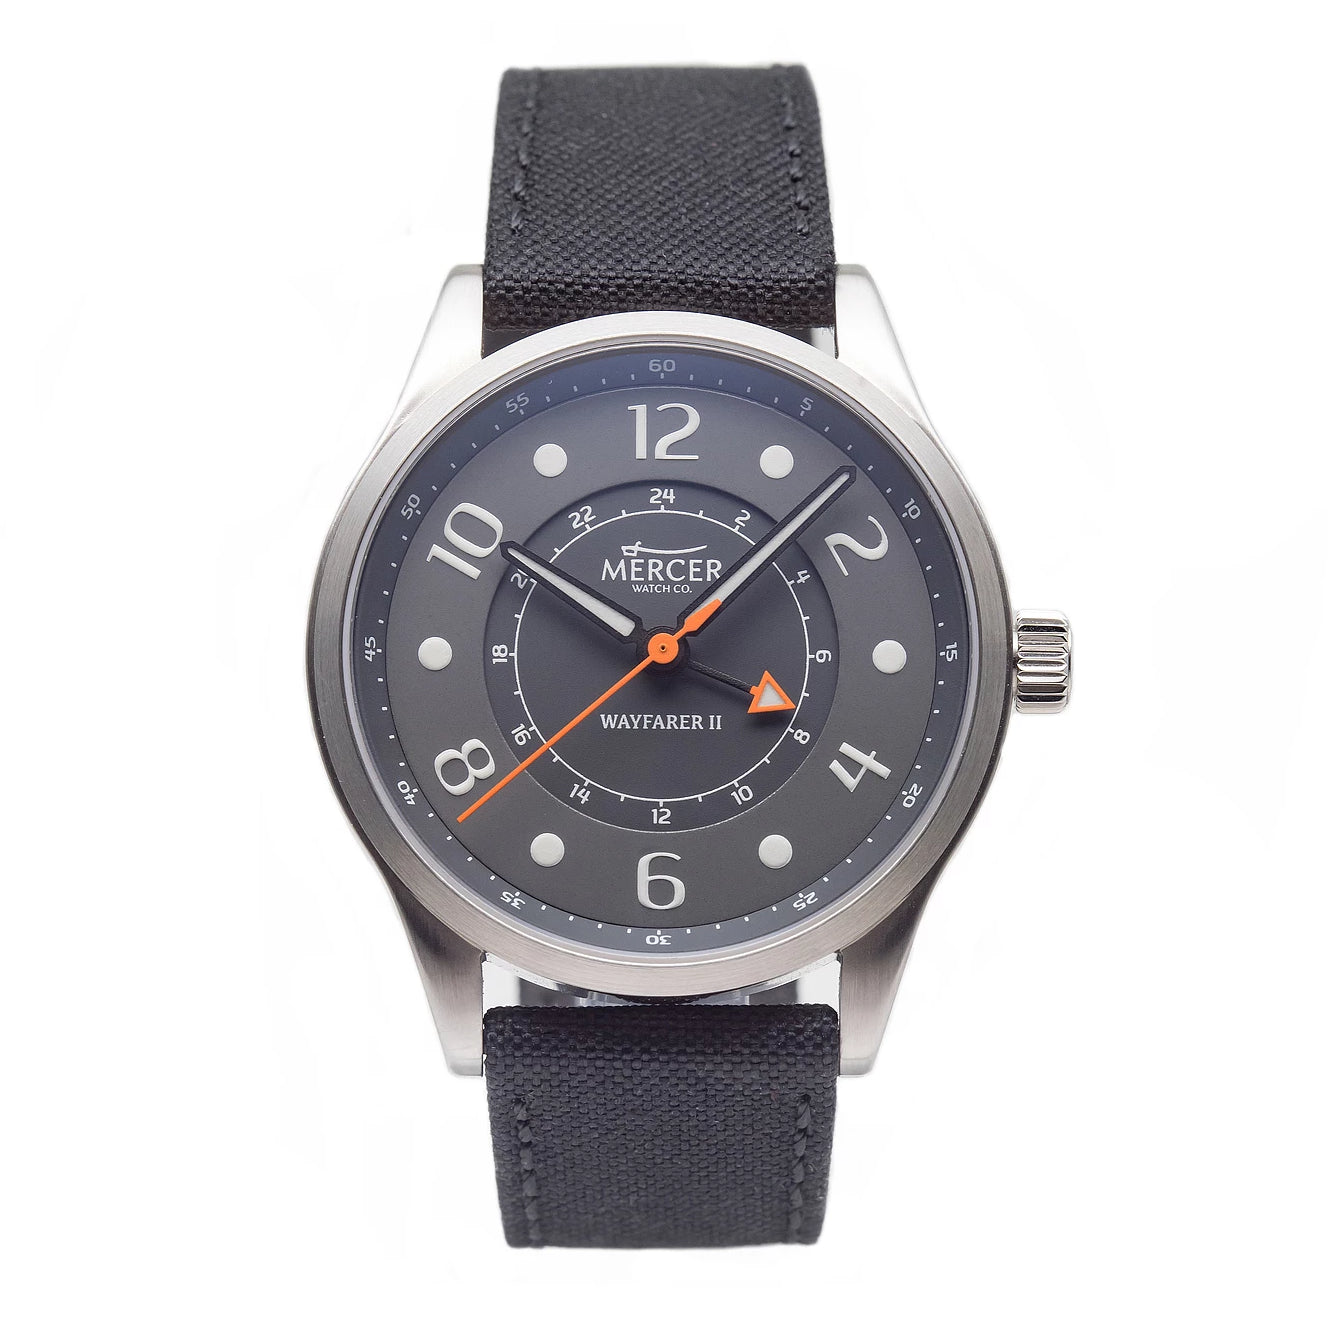 Wayfarer II GMT - gray